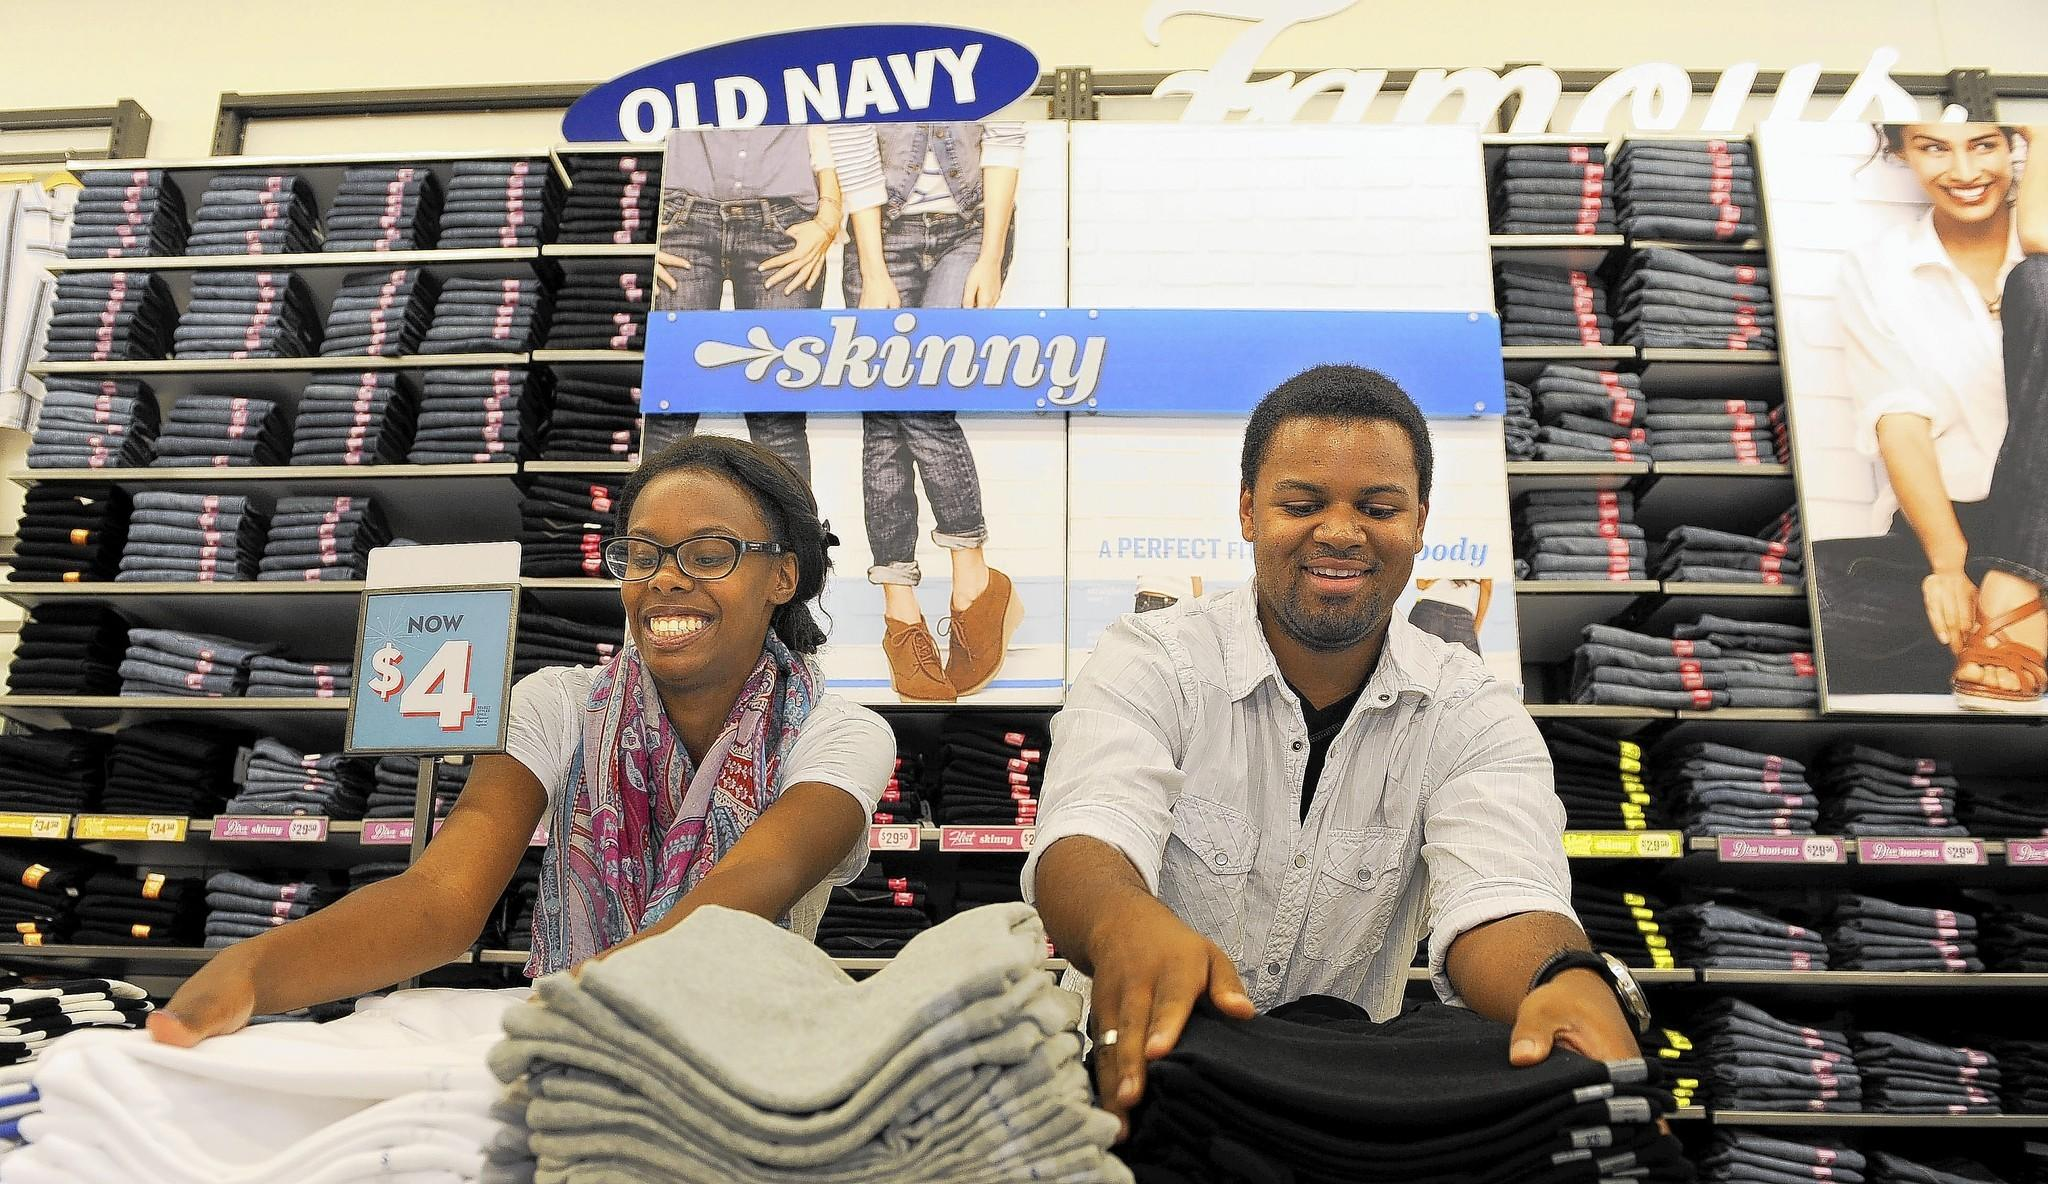 Keyerra Jeter (left) and Aaron Moon fold clothes at an Old Navy store in Gambrills. Old Navy's parent company, Gap Inc., recently raised its minimum wage to $9.